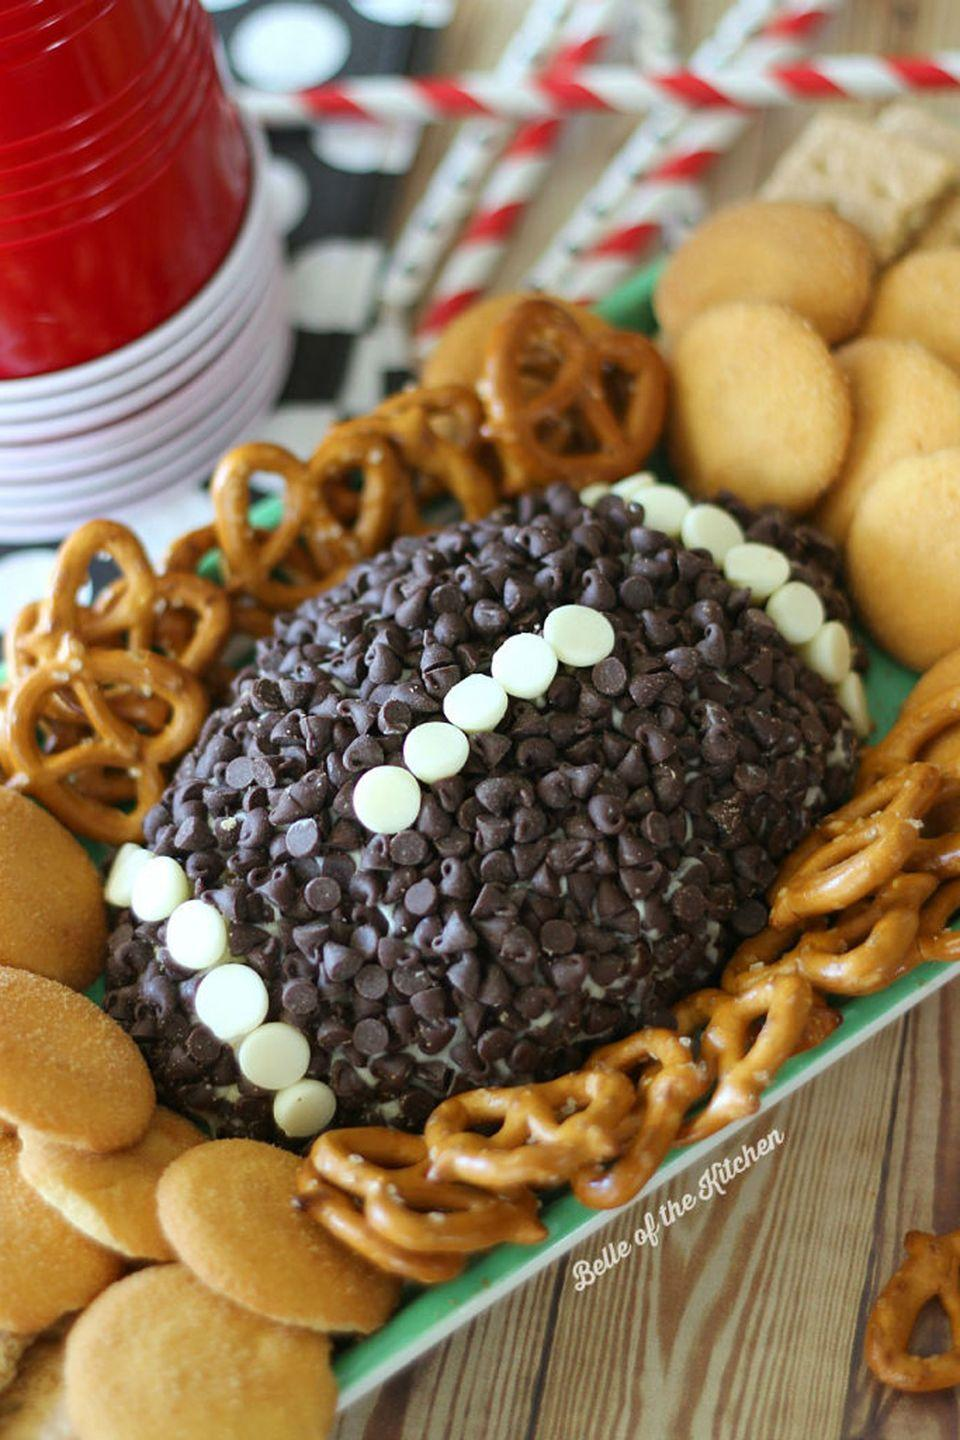 """<p>This dessert dip will have the whole party cheesin'.</p><p><strong>Get the recipe at <a href=""""https://belleofthekitchen.com/2014/10/28/game-day-chocolate-chip-cheesecake-ball/"""" rel=""""nofollow noopener"""" target=""""_blank"""" data-ylk=""""slk:Bell of the Kitchen"""" class=""""link rapid-noclick-resp"""">Bell of the Kitchen</a>.</strong></p>"""